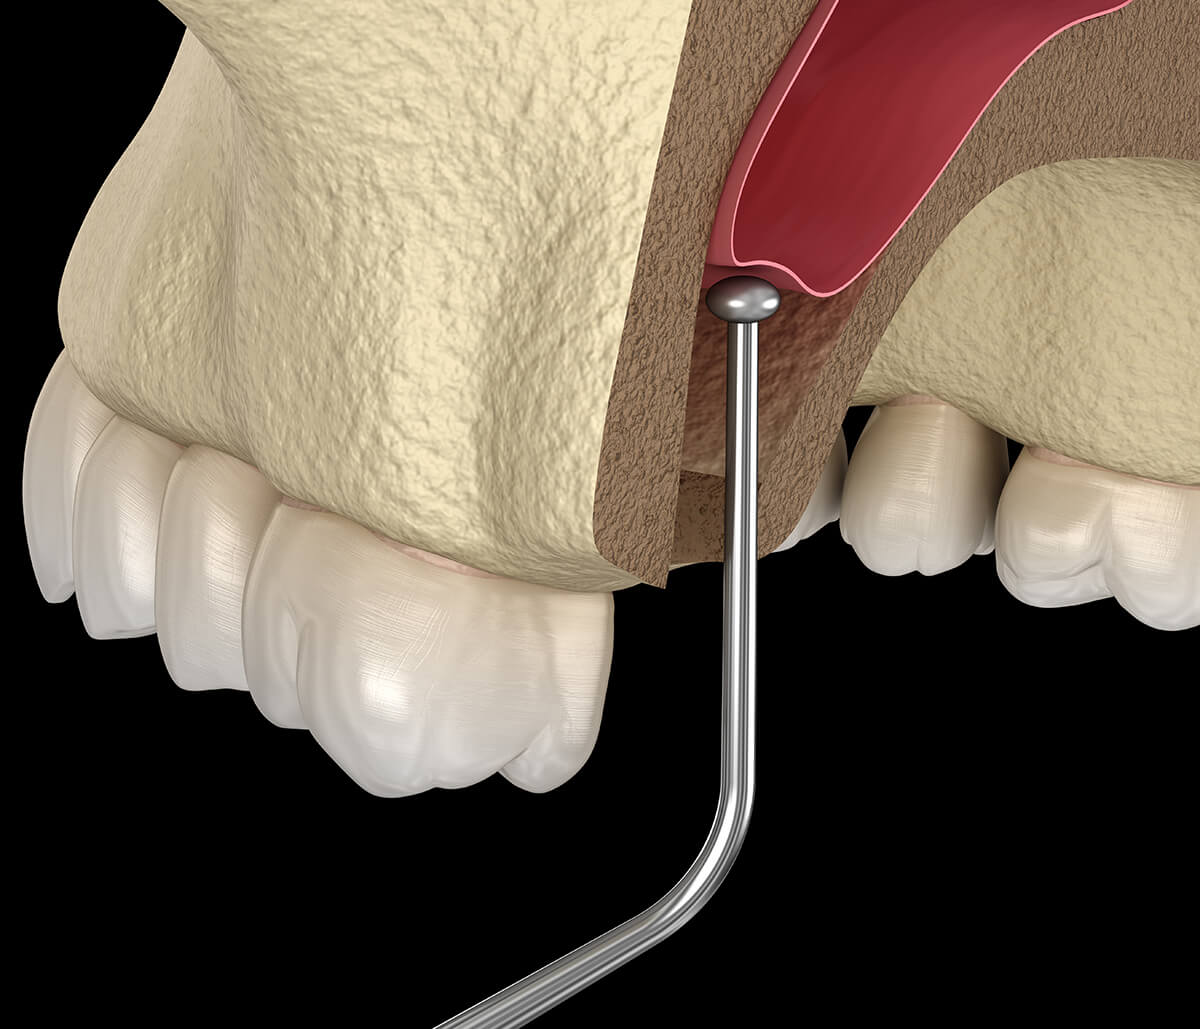 One Day Teeth Replacement at Peninsula Dental Implant Center in San Mateo Area